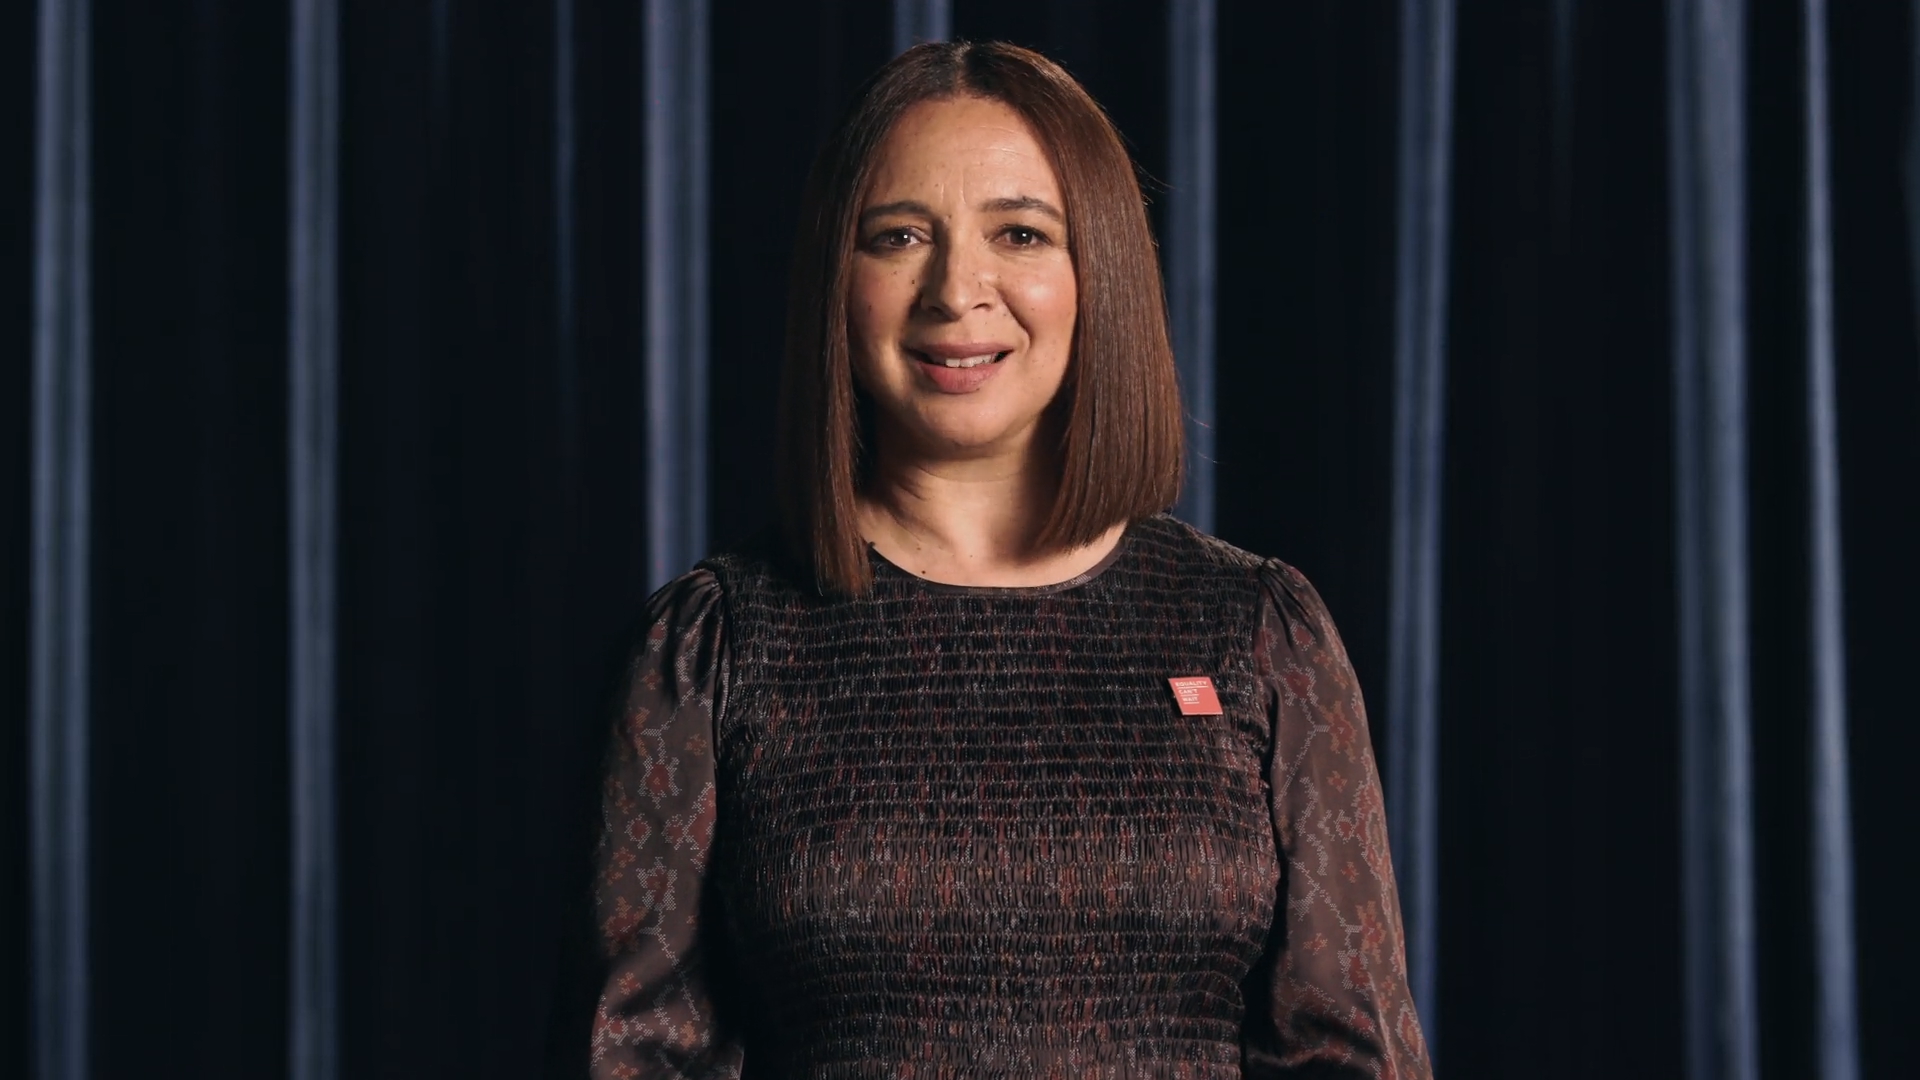 Maya Rudolph shares why waiting 208 years for gender equality is no joke.